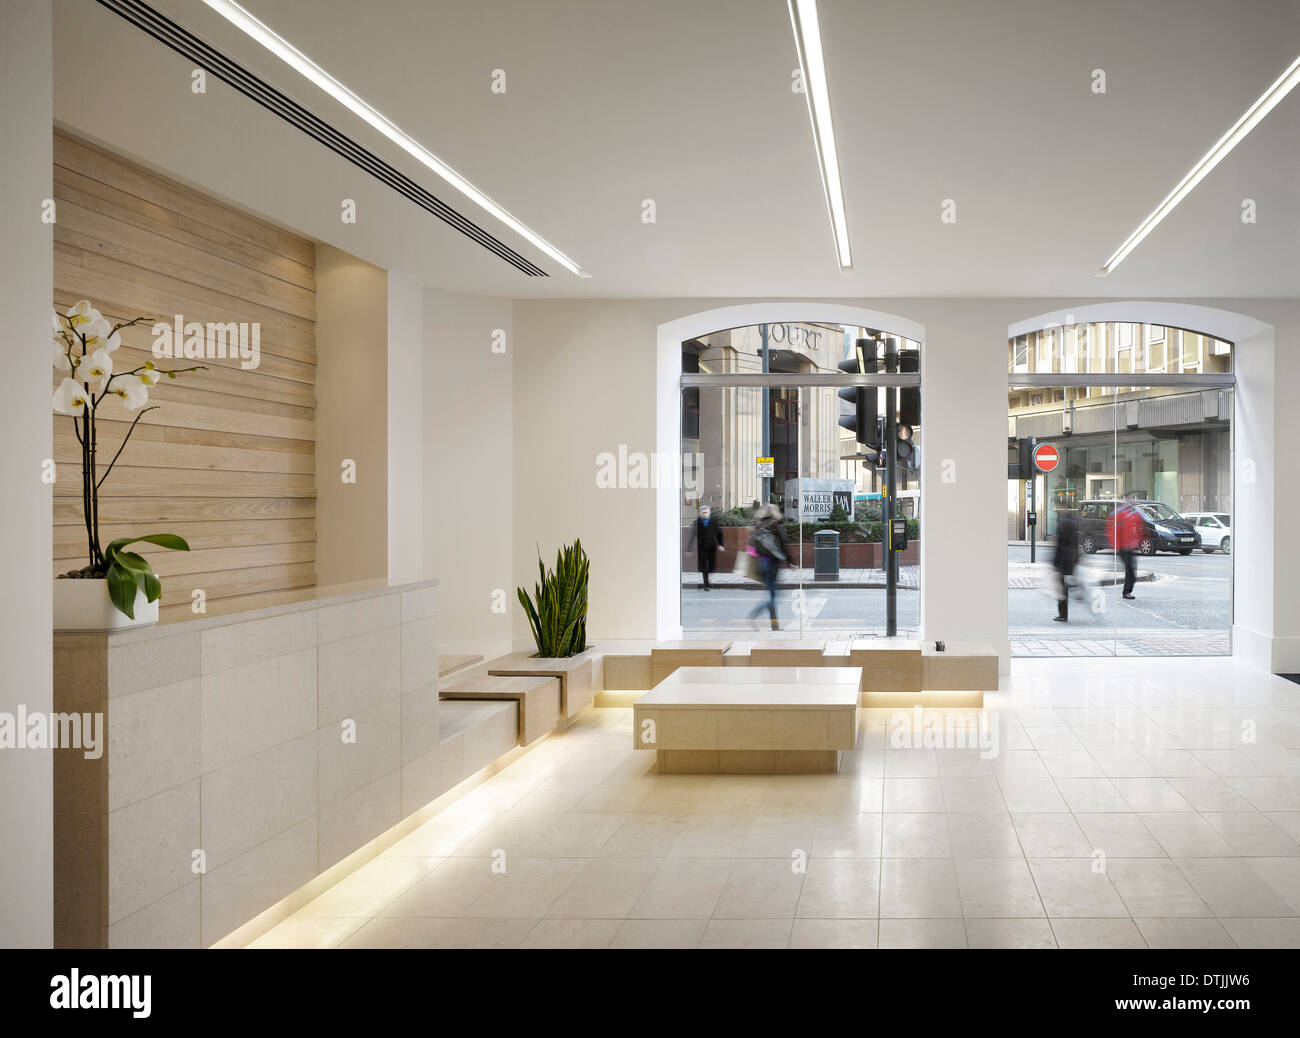 Reception area of commercial building, King Street, Leeds, Yorkshire. - Stock Image